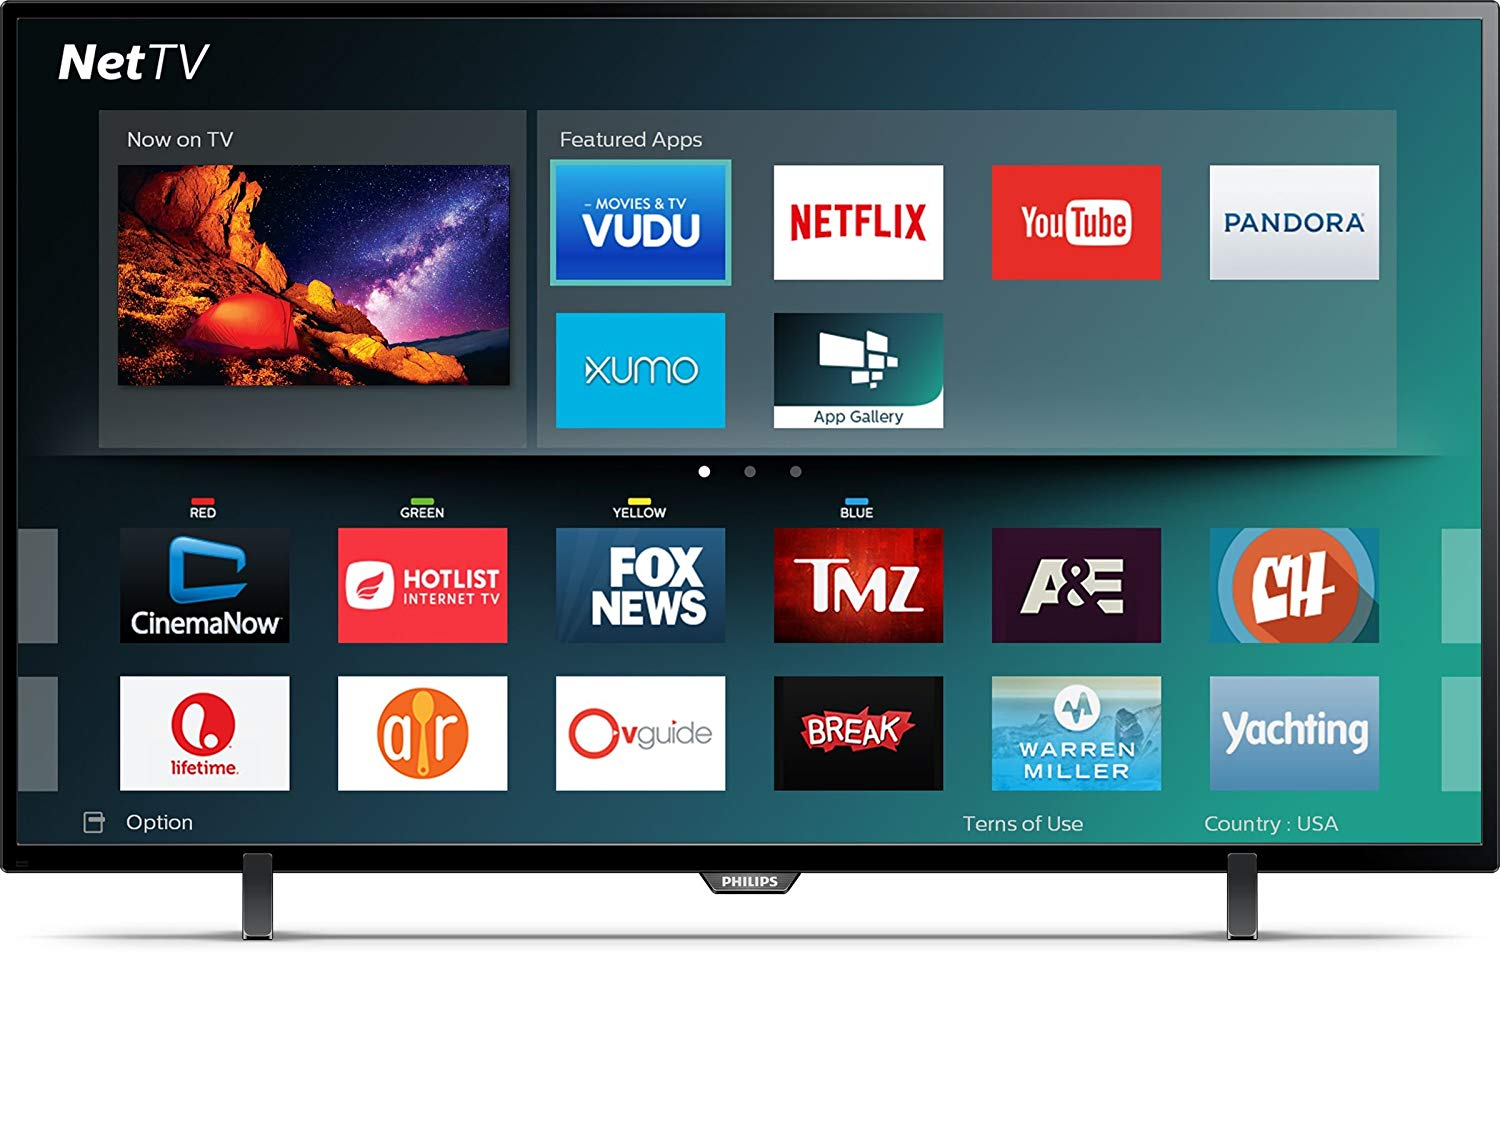 An image of Philips 43PFL5602/F7 43-Inch HDR 4K LED TV with Motion Rate 120